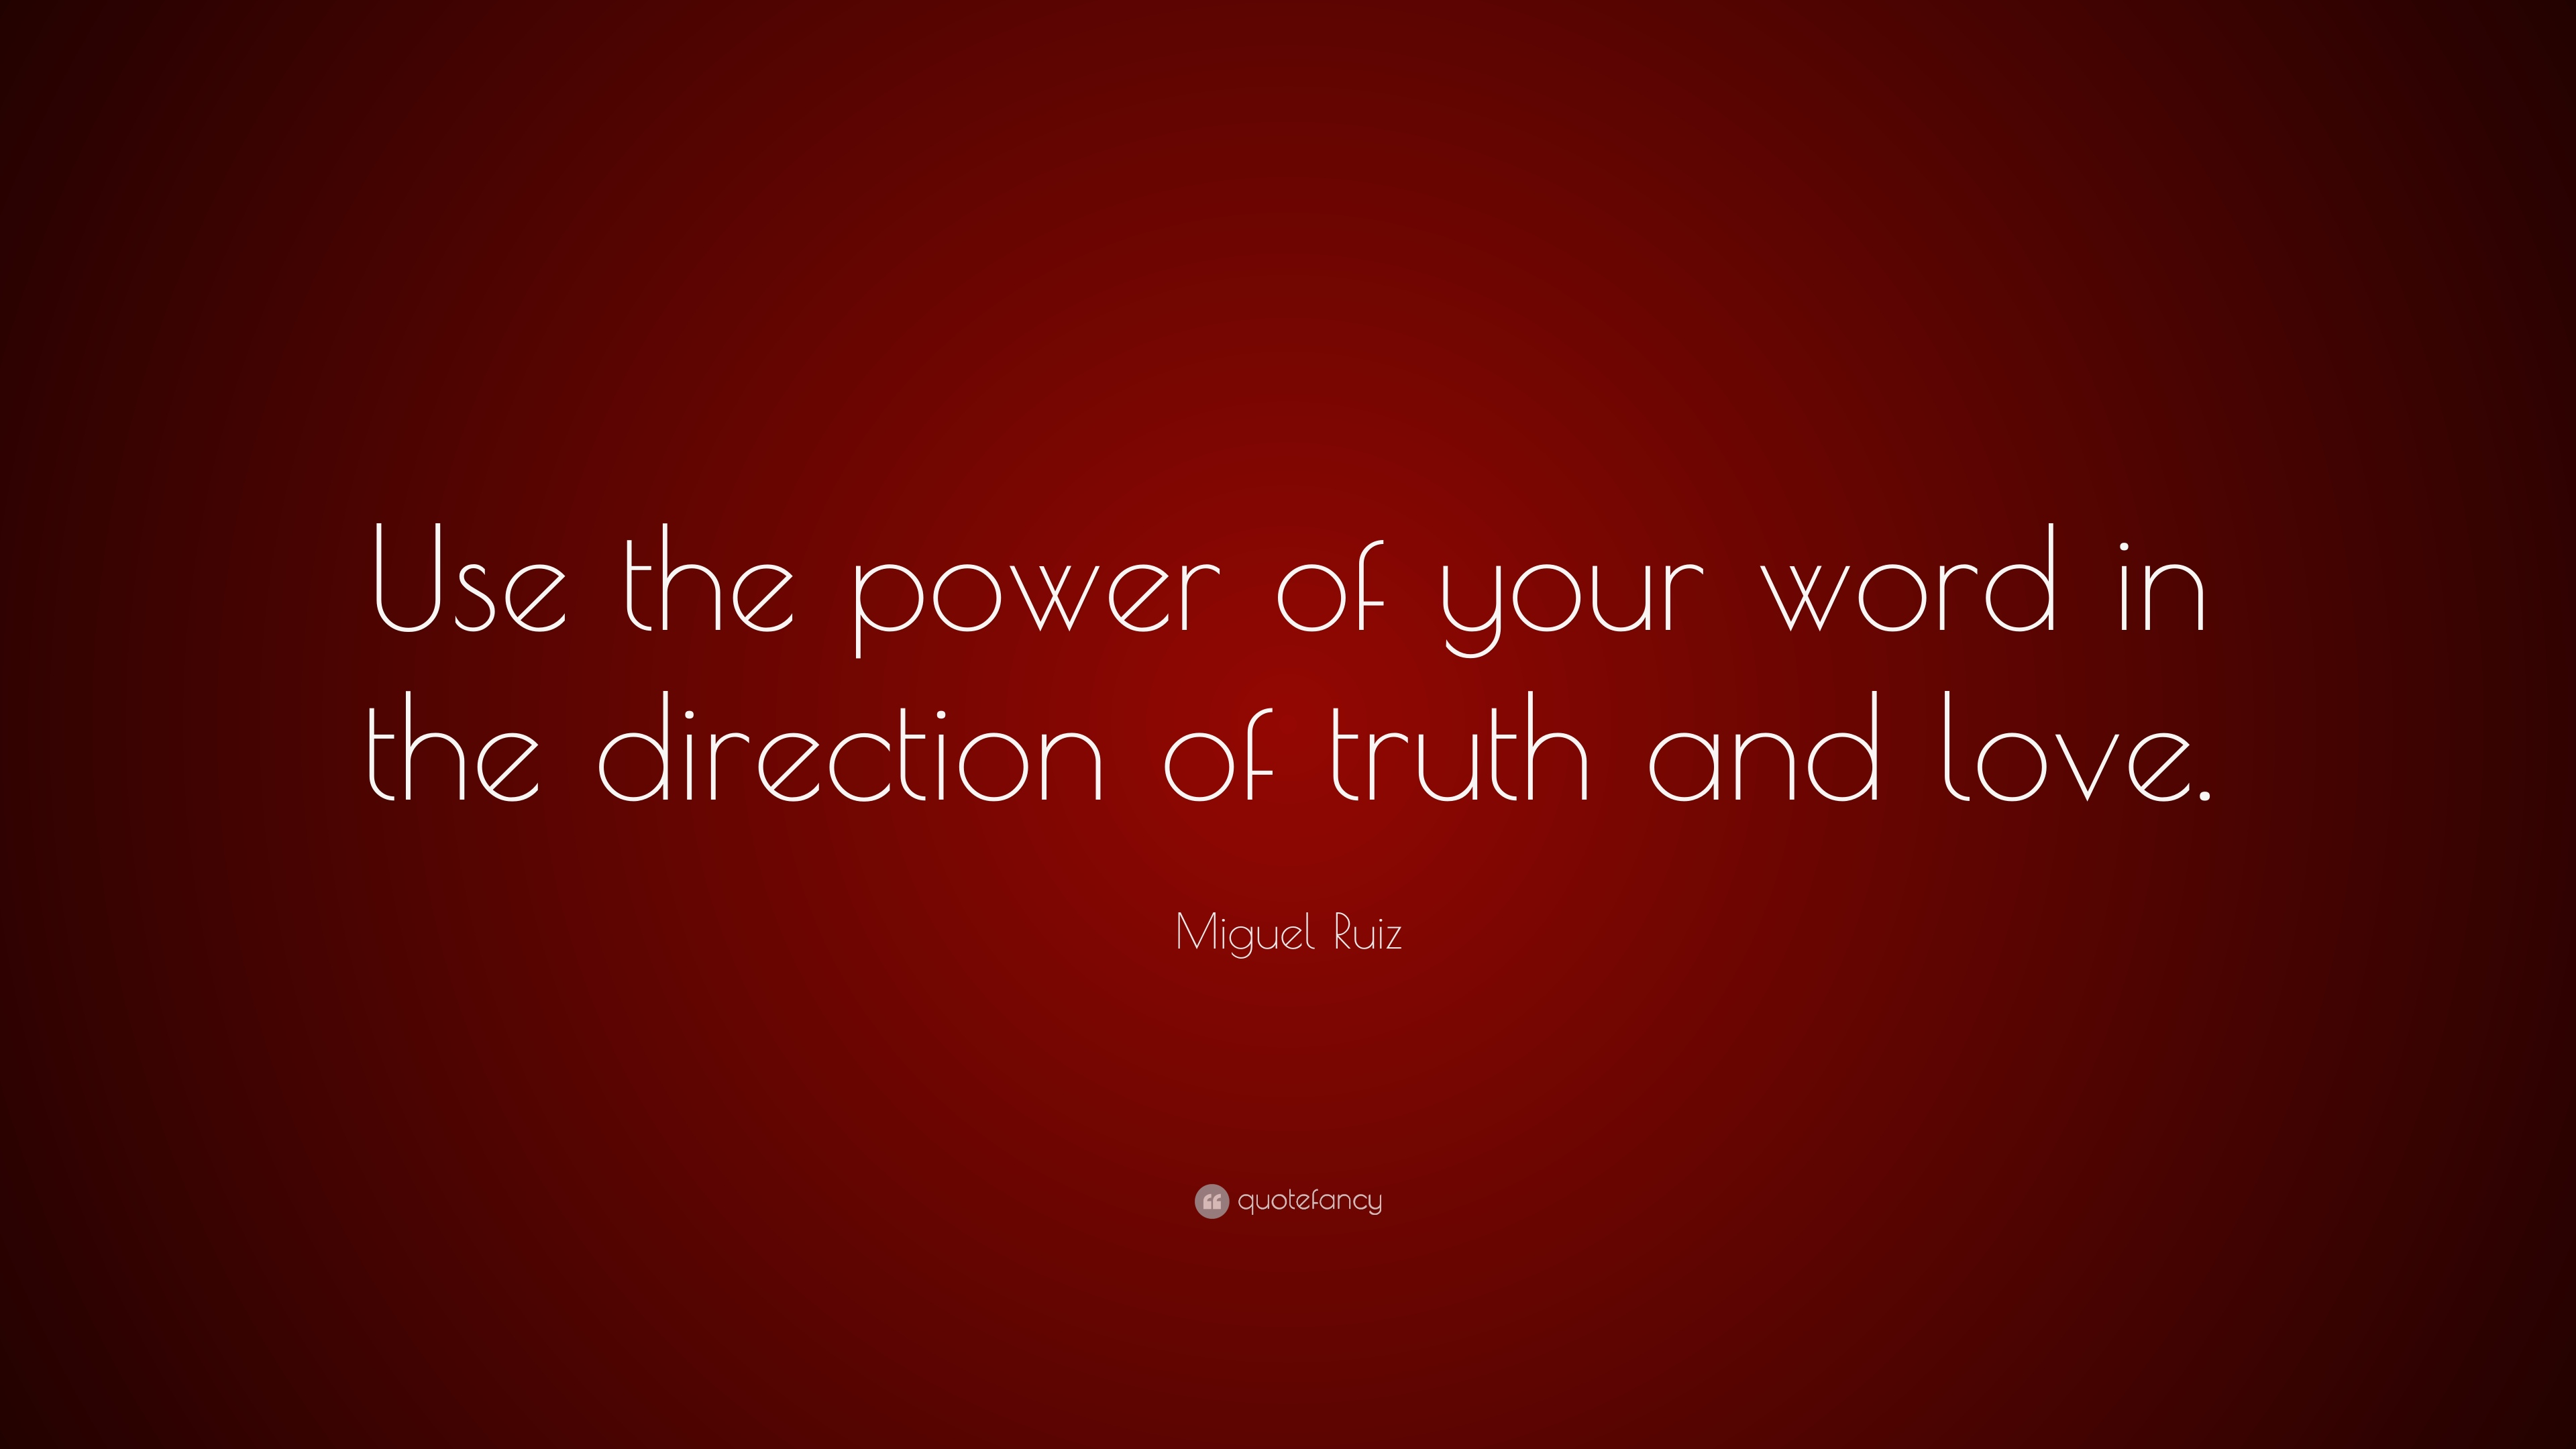 miguel ruiz quote   u201cuse the power of your word in the